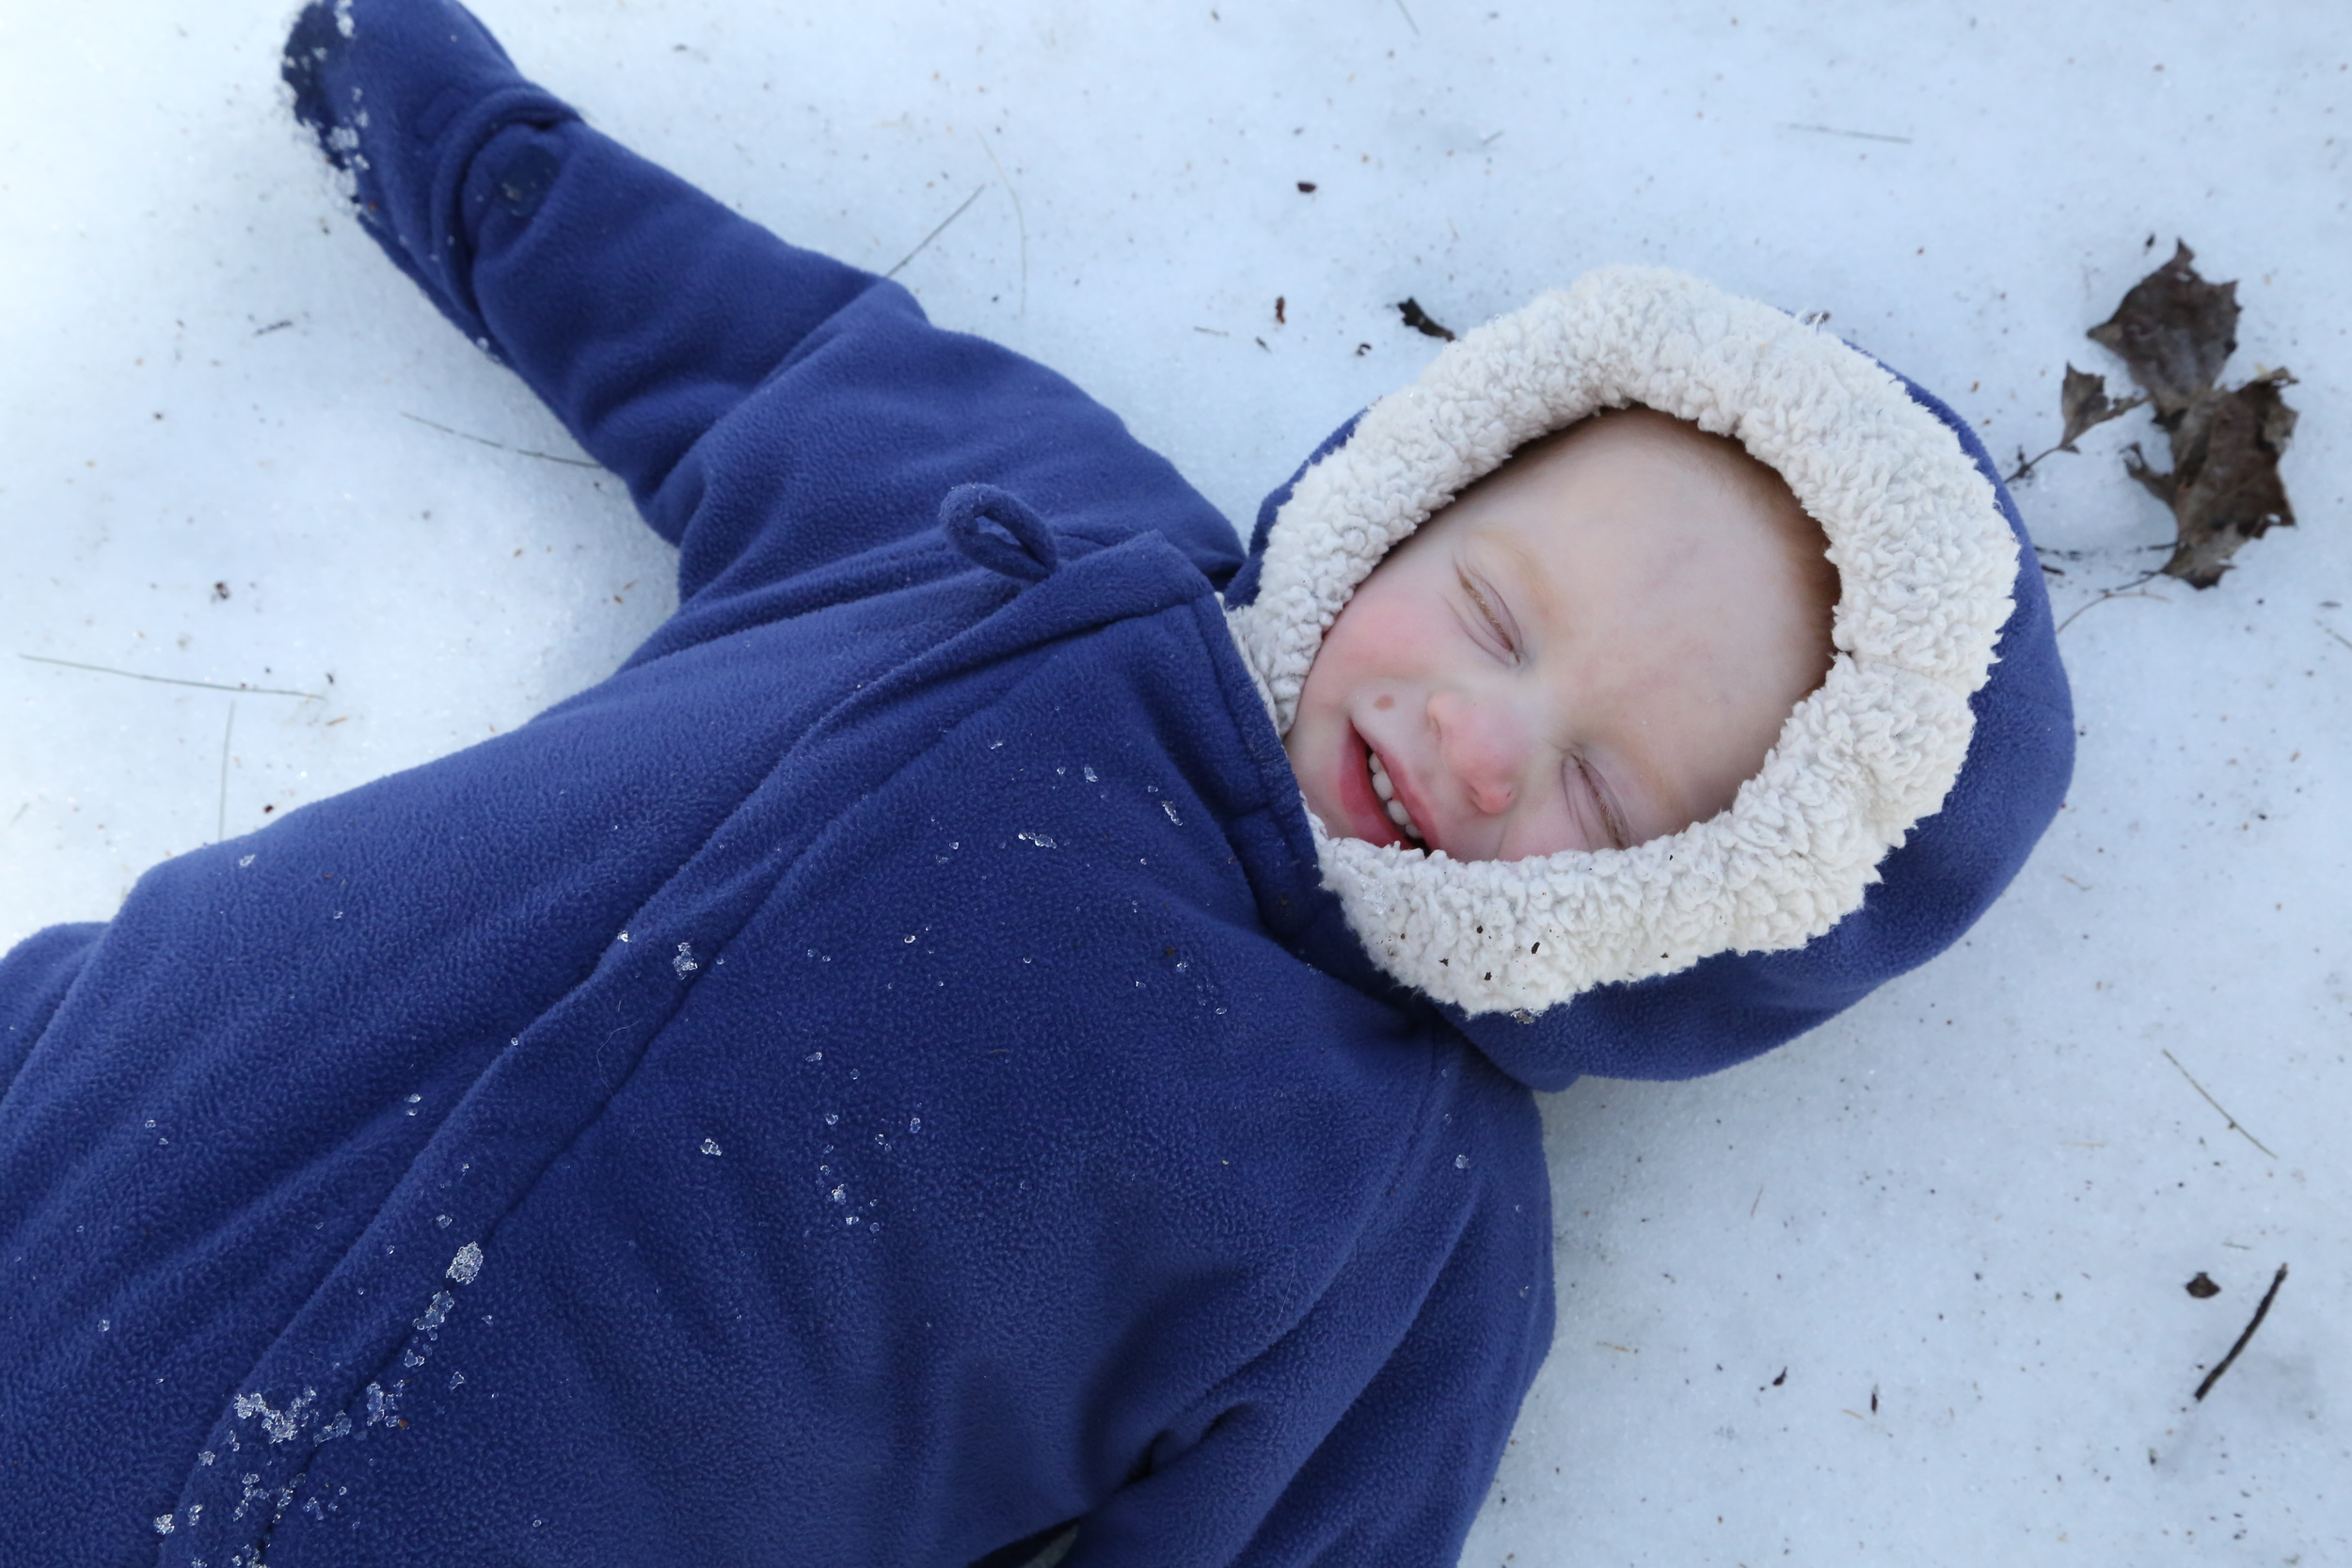 She was very happy when I laid down by her and she snuggled deep in her baby snowsuit.